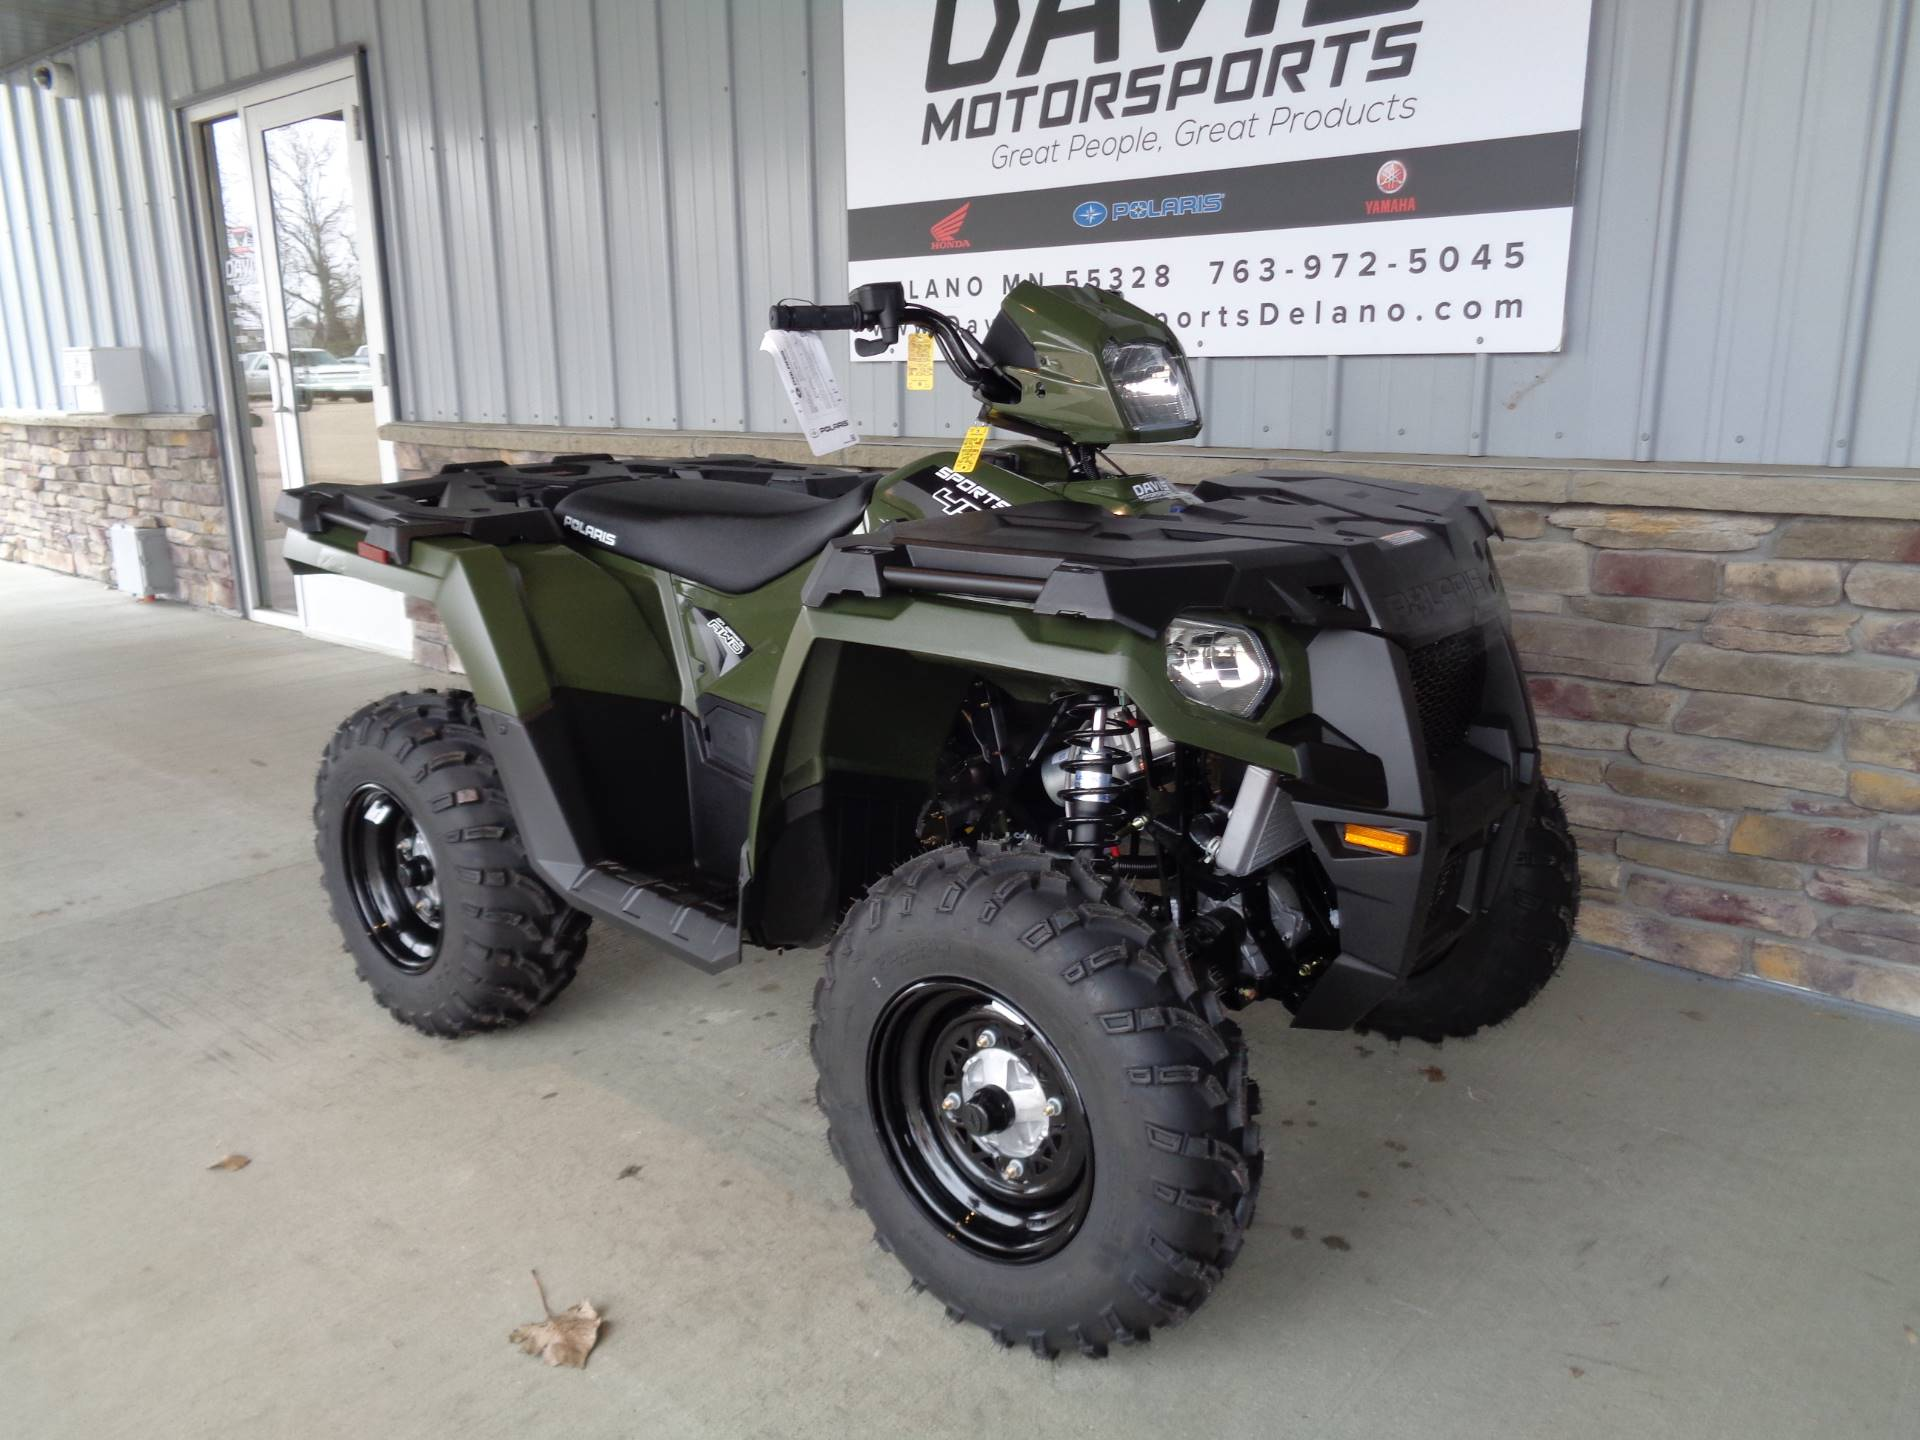 2020 Polaris Sportsman 450 H.O. in Delano, Minnesota - Photo 3